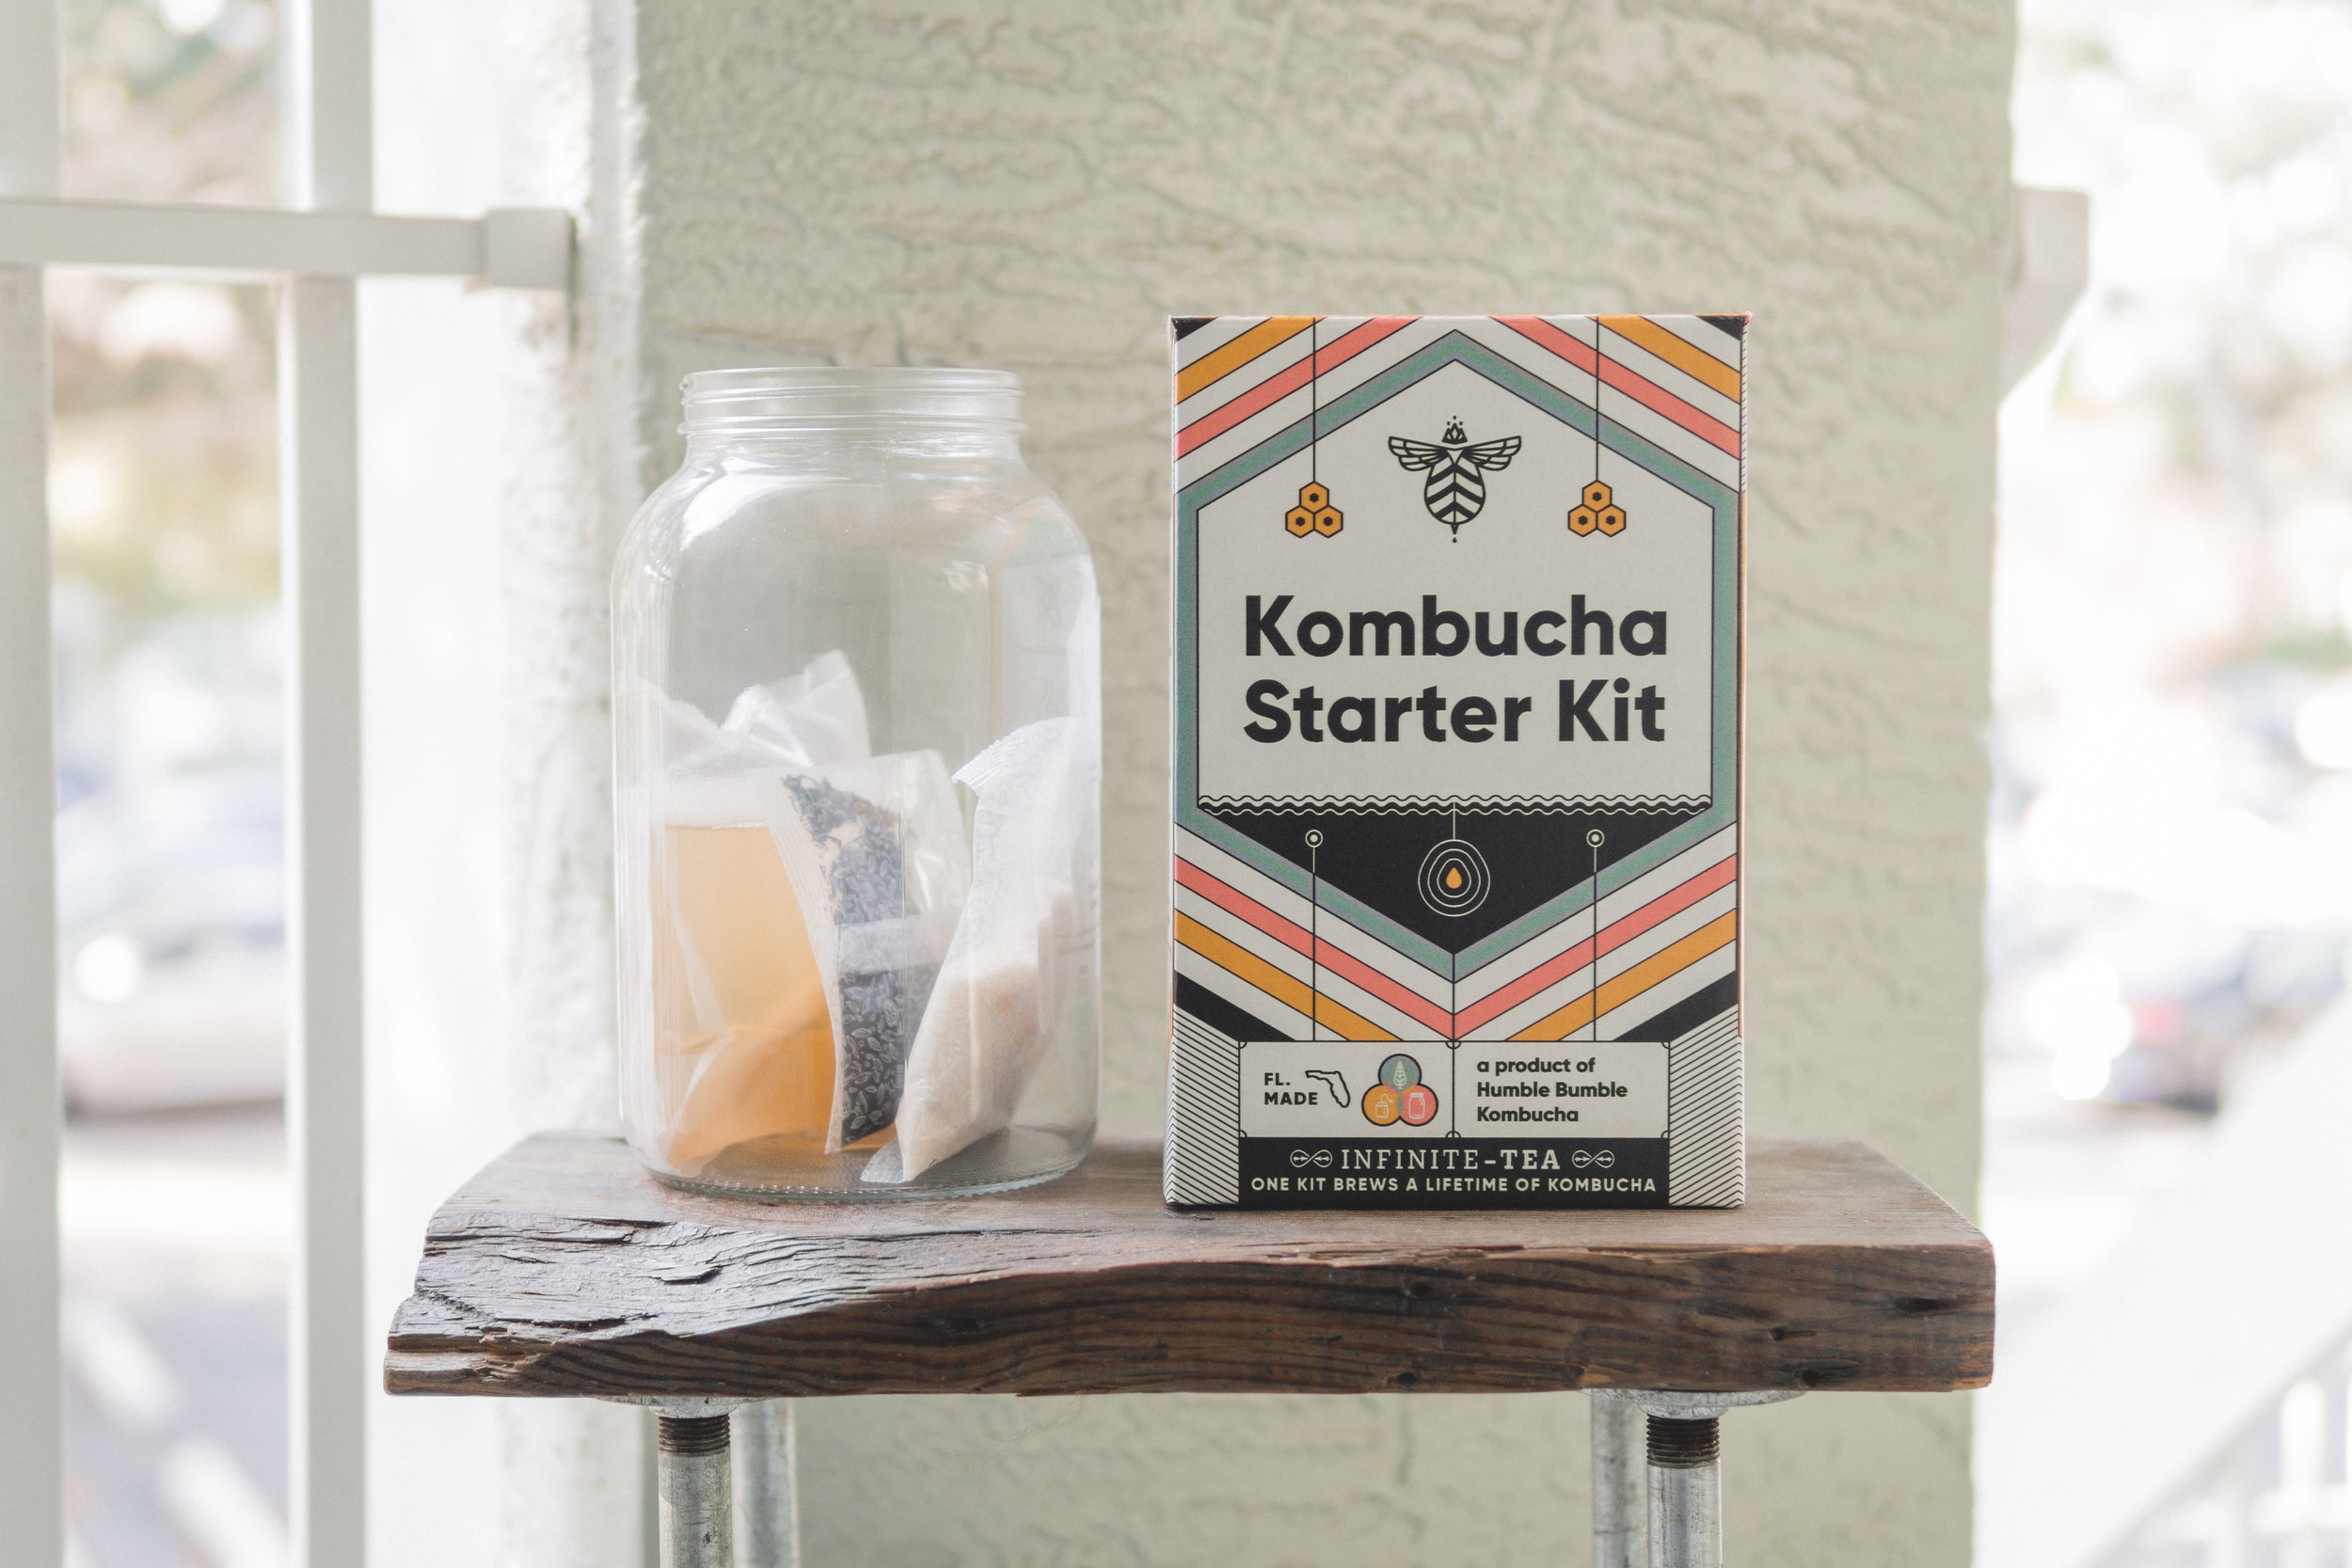 Craft A Brew Kombucha Kit - In need of a healthy start this year and a little financial freedom? Skip purchasing bottles of kombucha at the store and brew your own with this all-encompassing kit that's Florida made! The kit contains all you need to create one gallon of sweet and tangy kombucha tea.